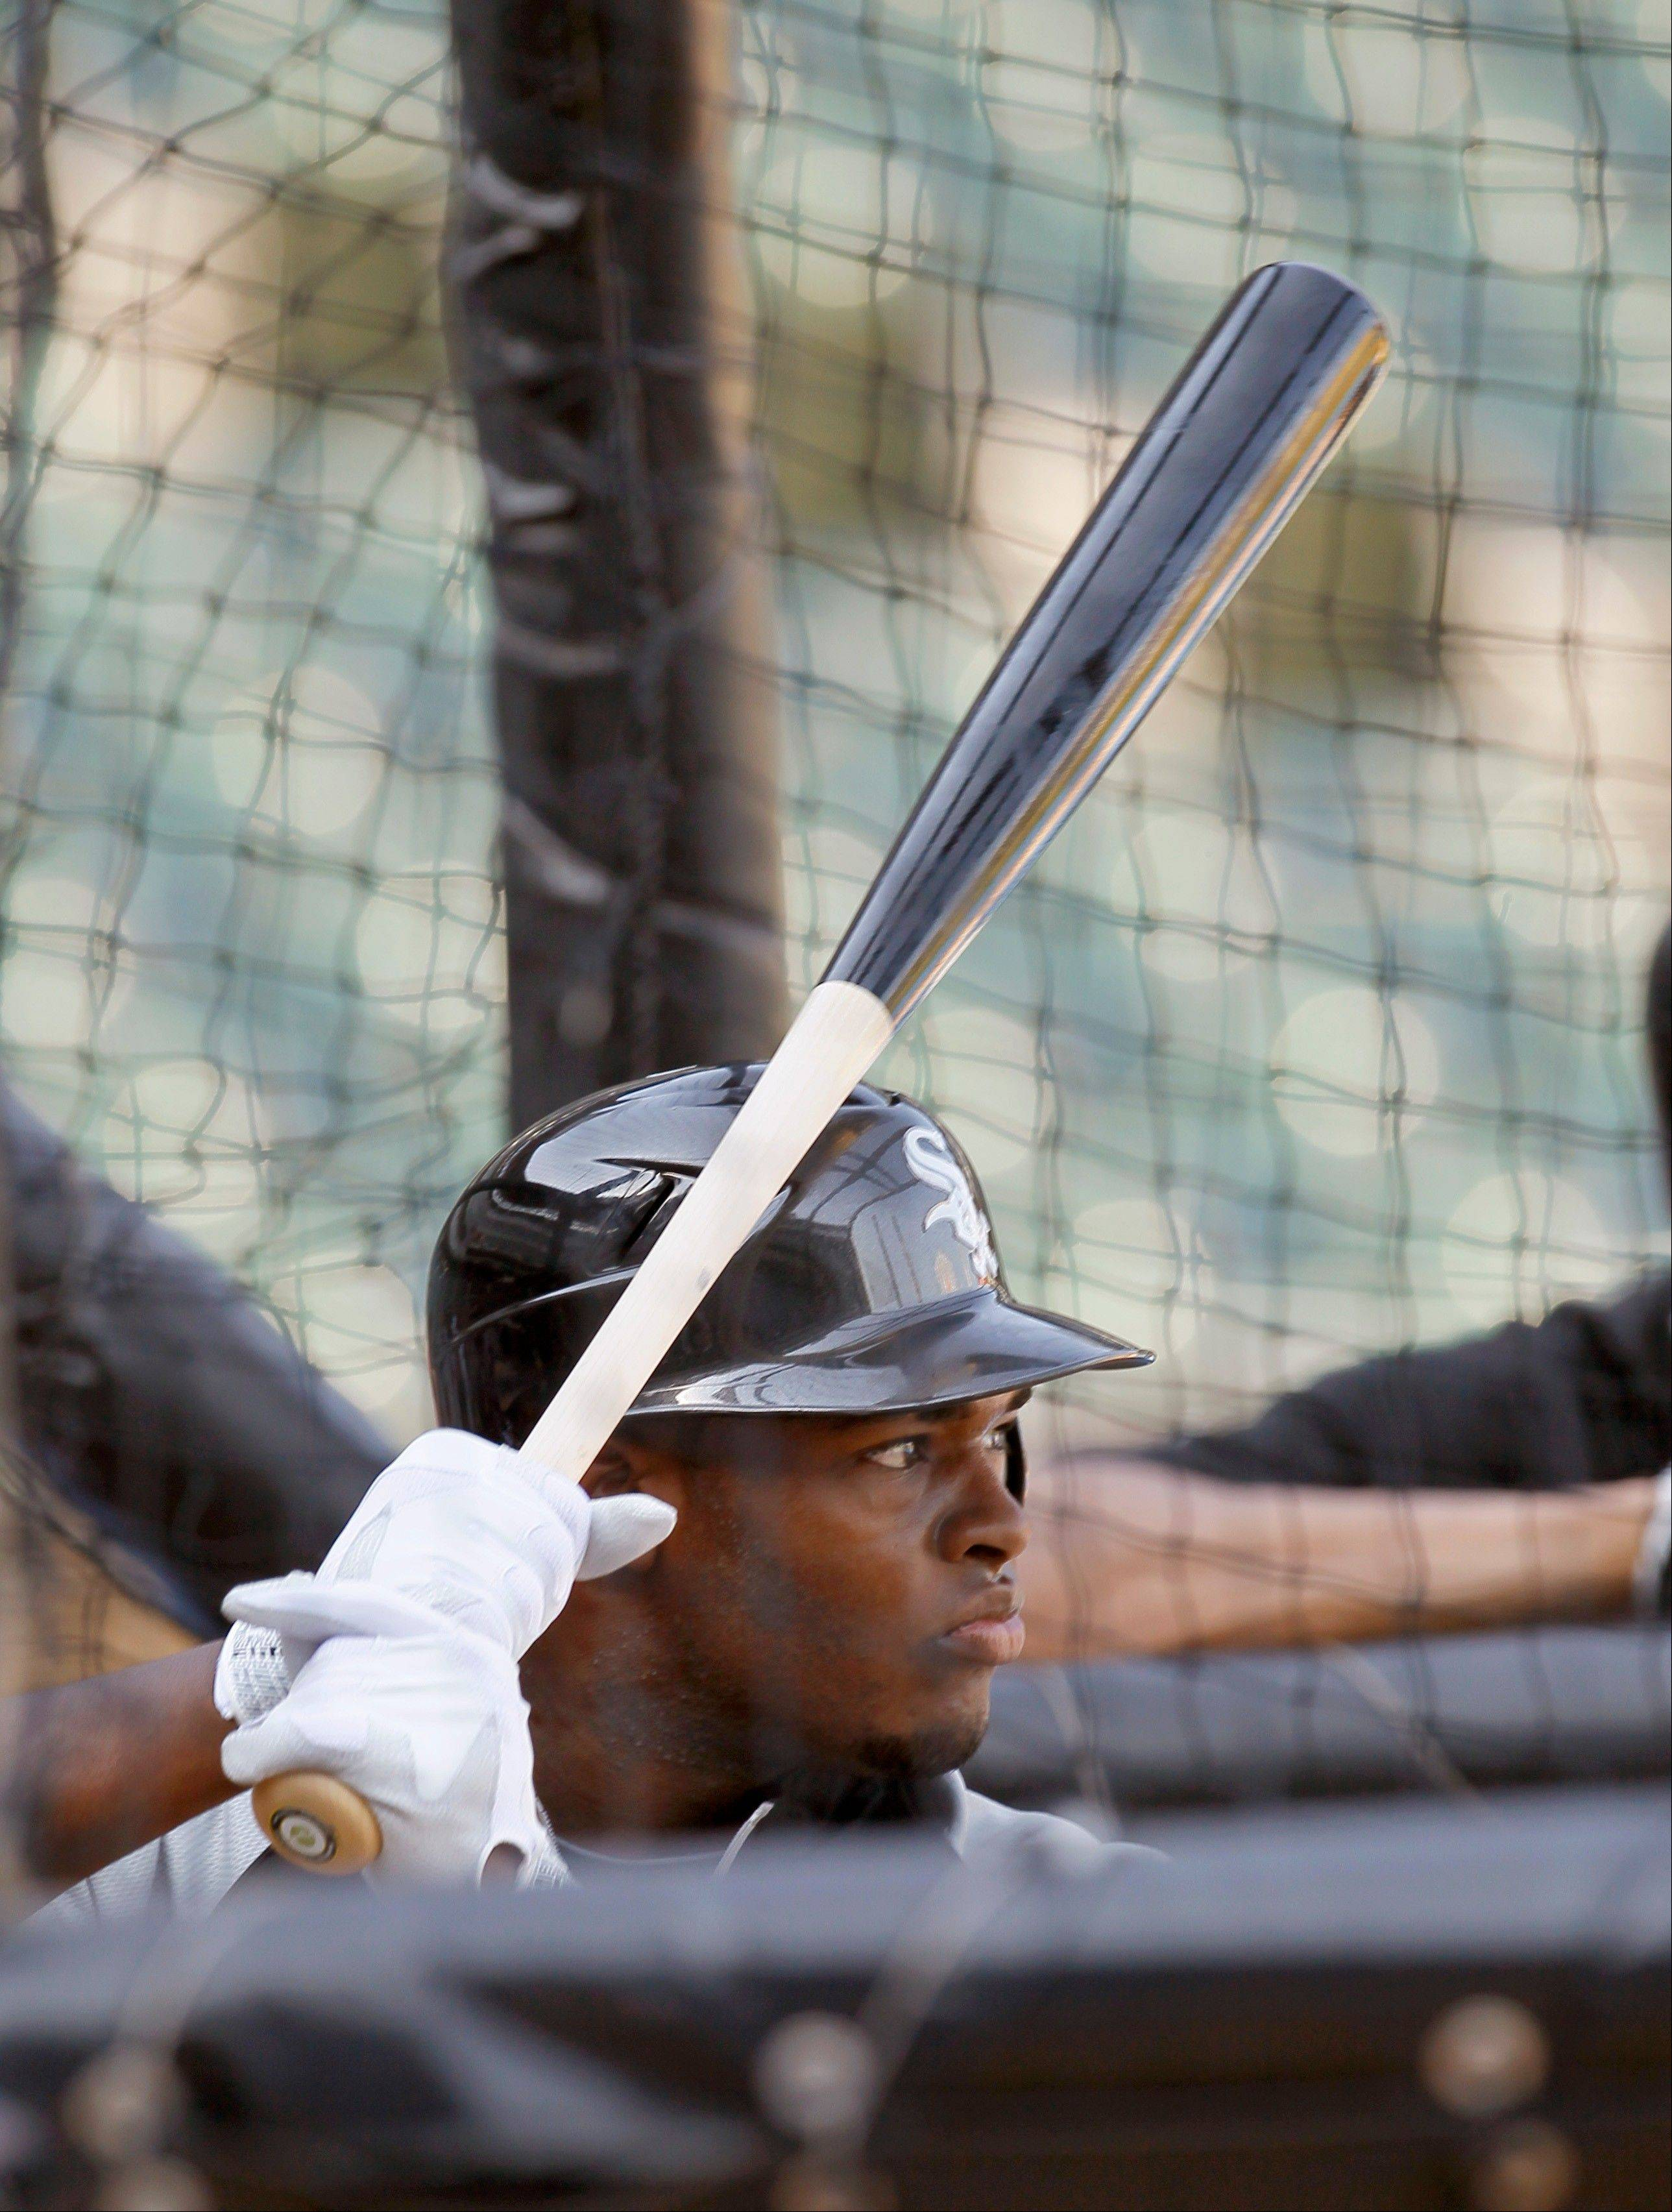 White Sox first-round draft pick outfielder Courtney Hawkins, from Carroll High School in Corpus Christi, Texas, participates in batting practice before Monday's game against the Cubs.